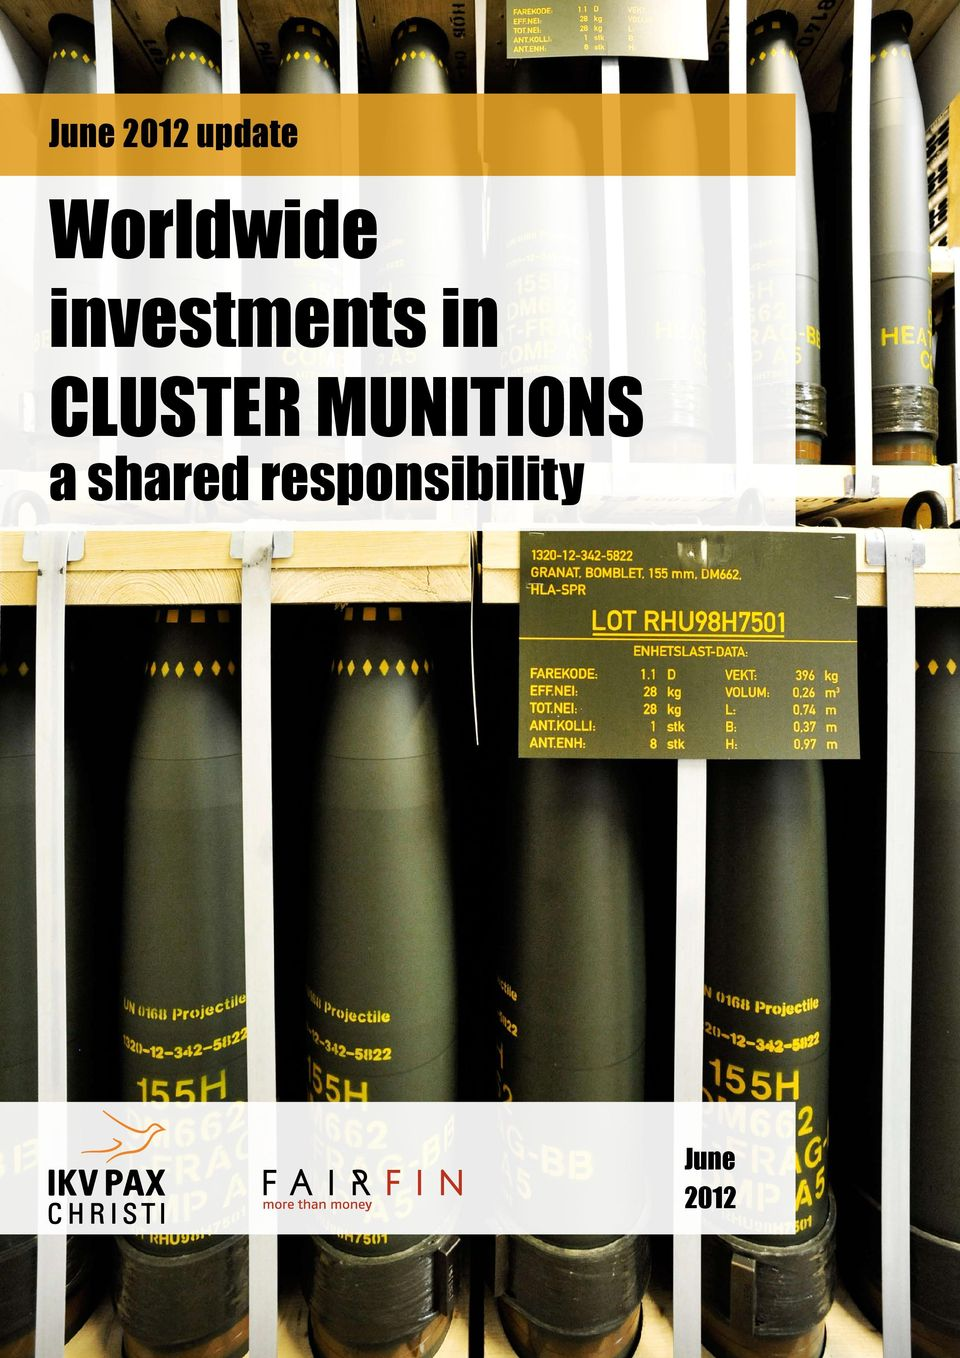 in CLUSTER MUNITIONS a